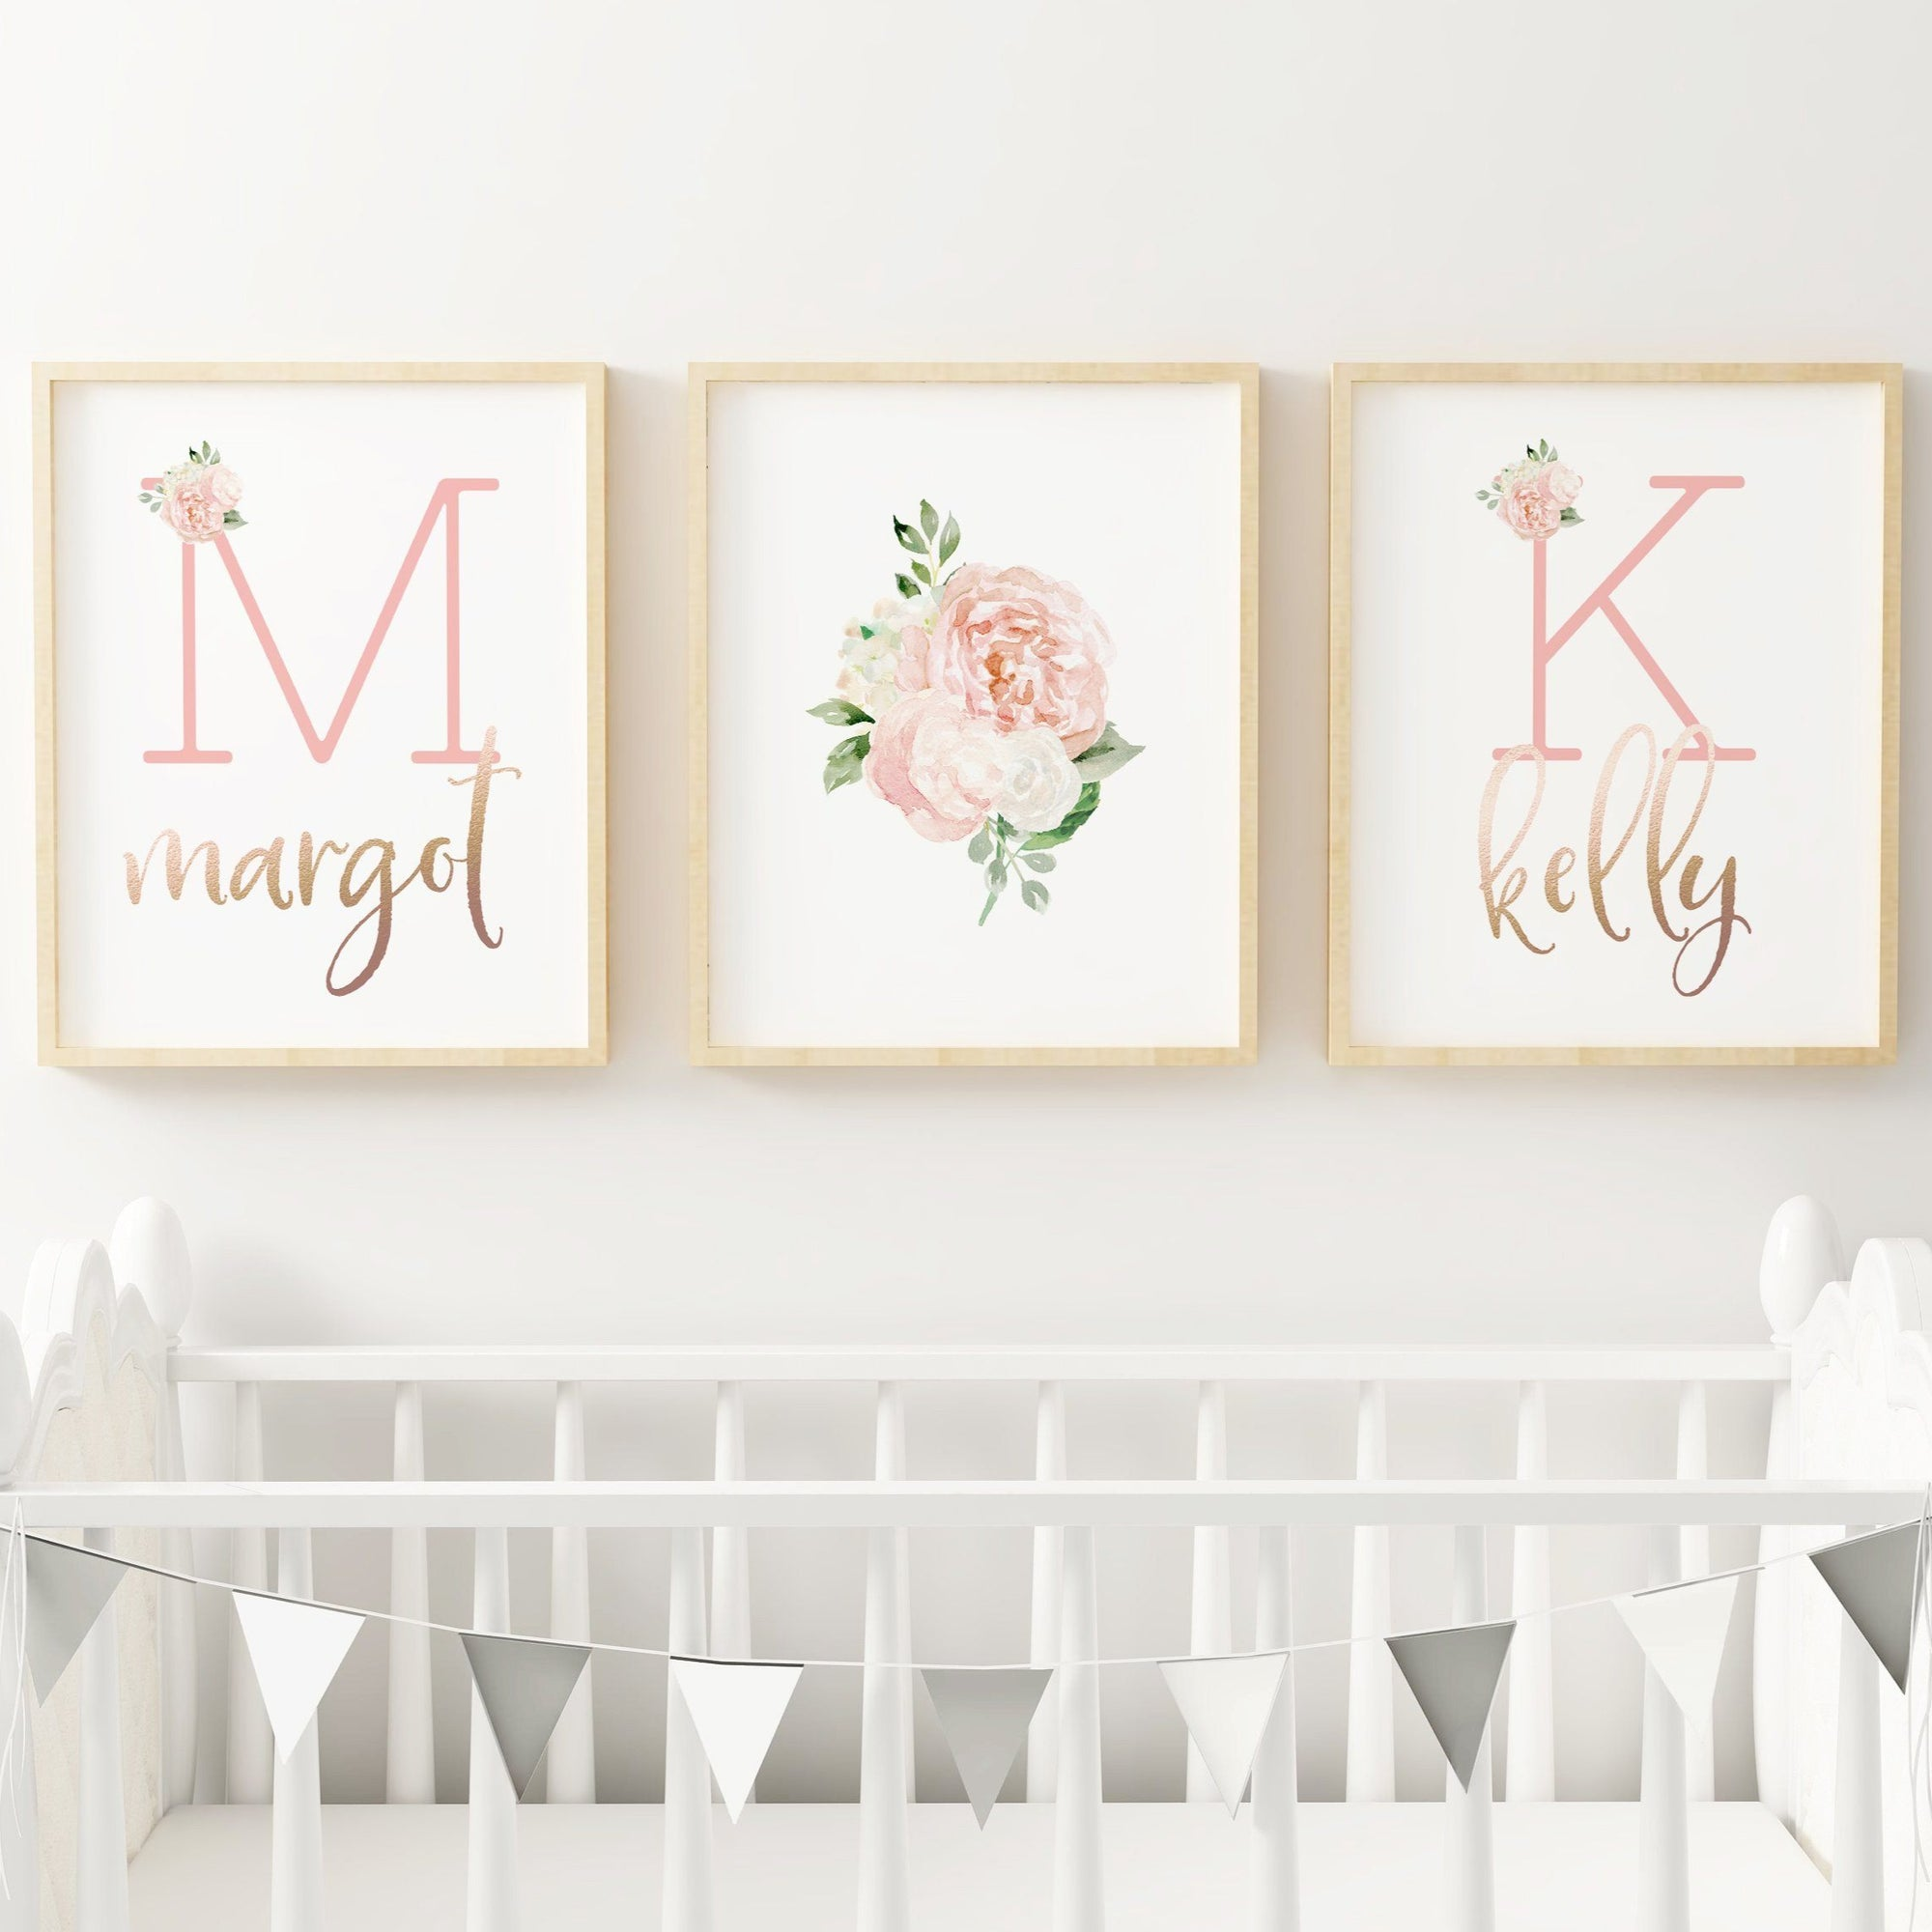 Dark Blush - Twins // Set of 3 Prints